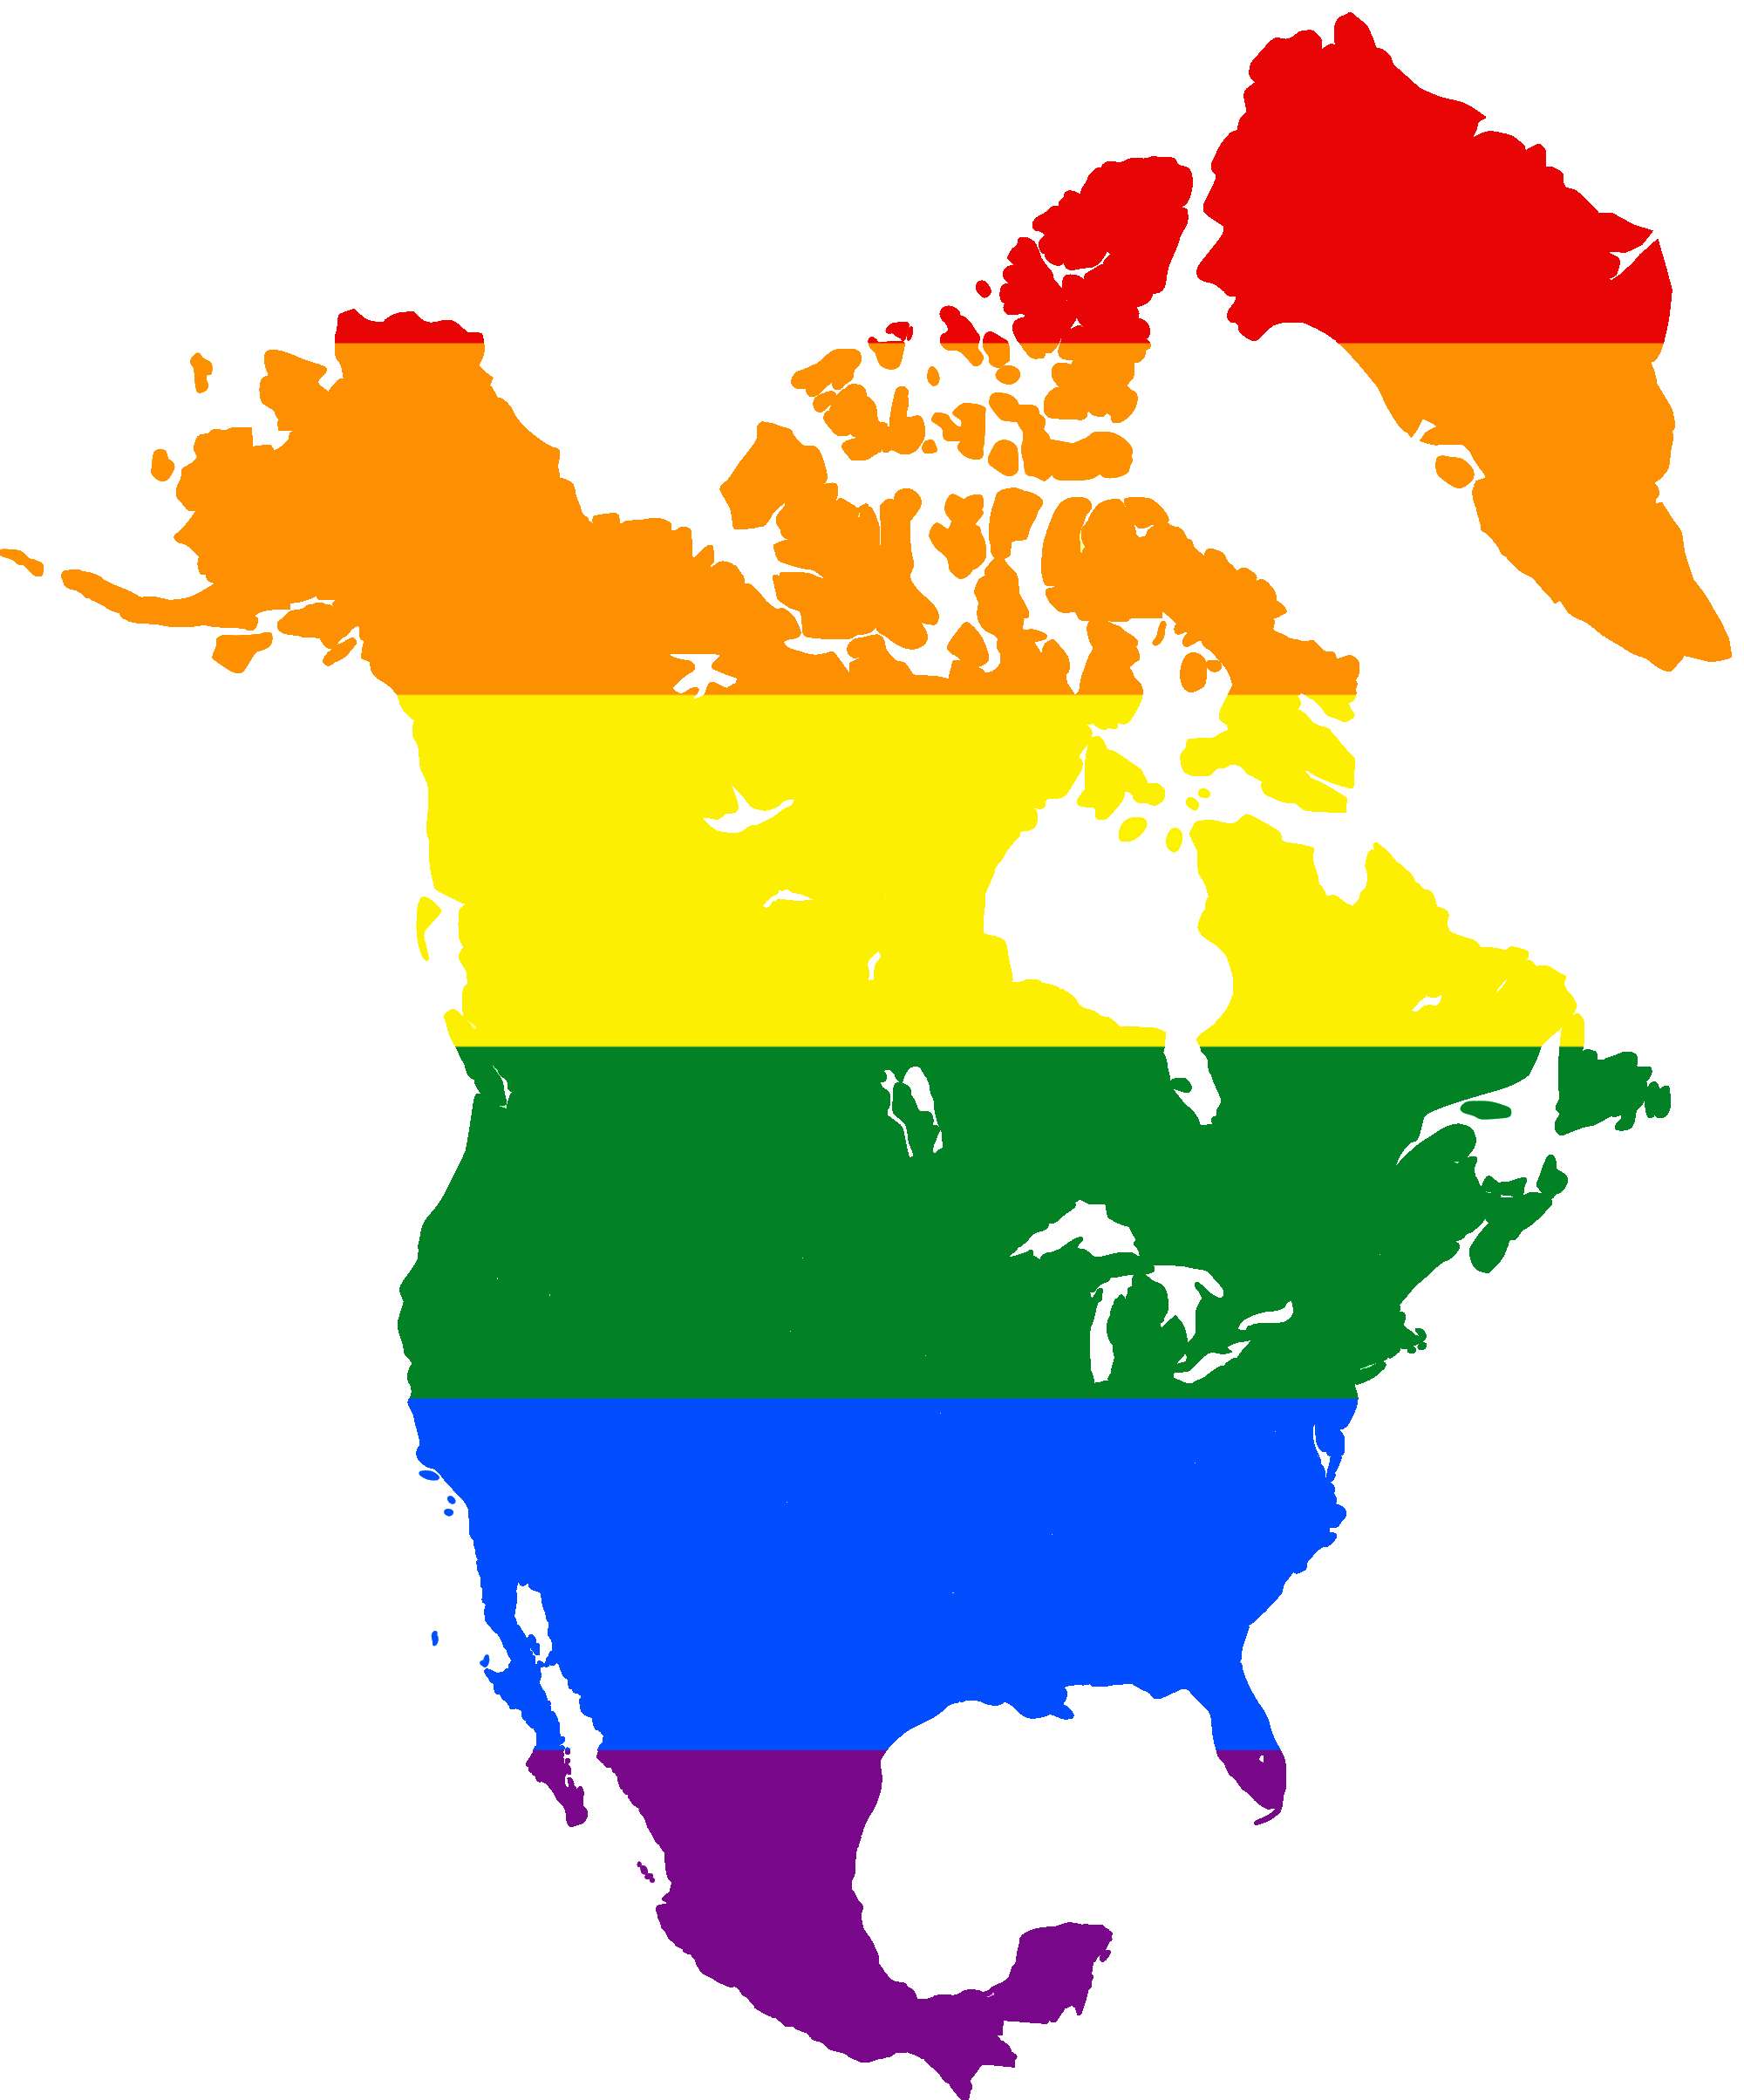 North america map png. File lgbt flag of